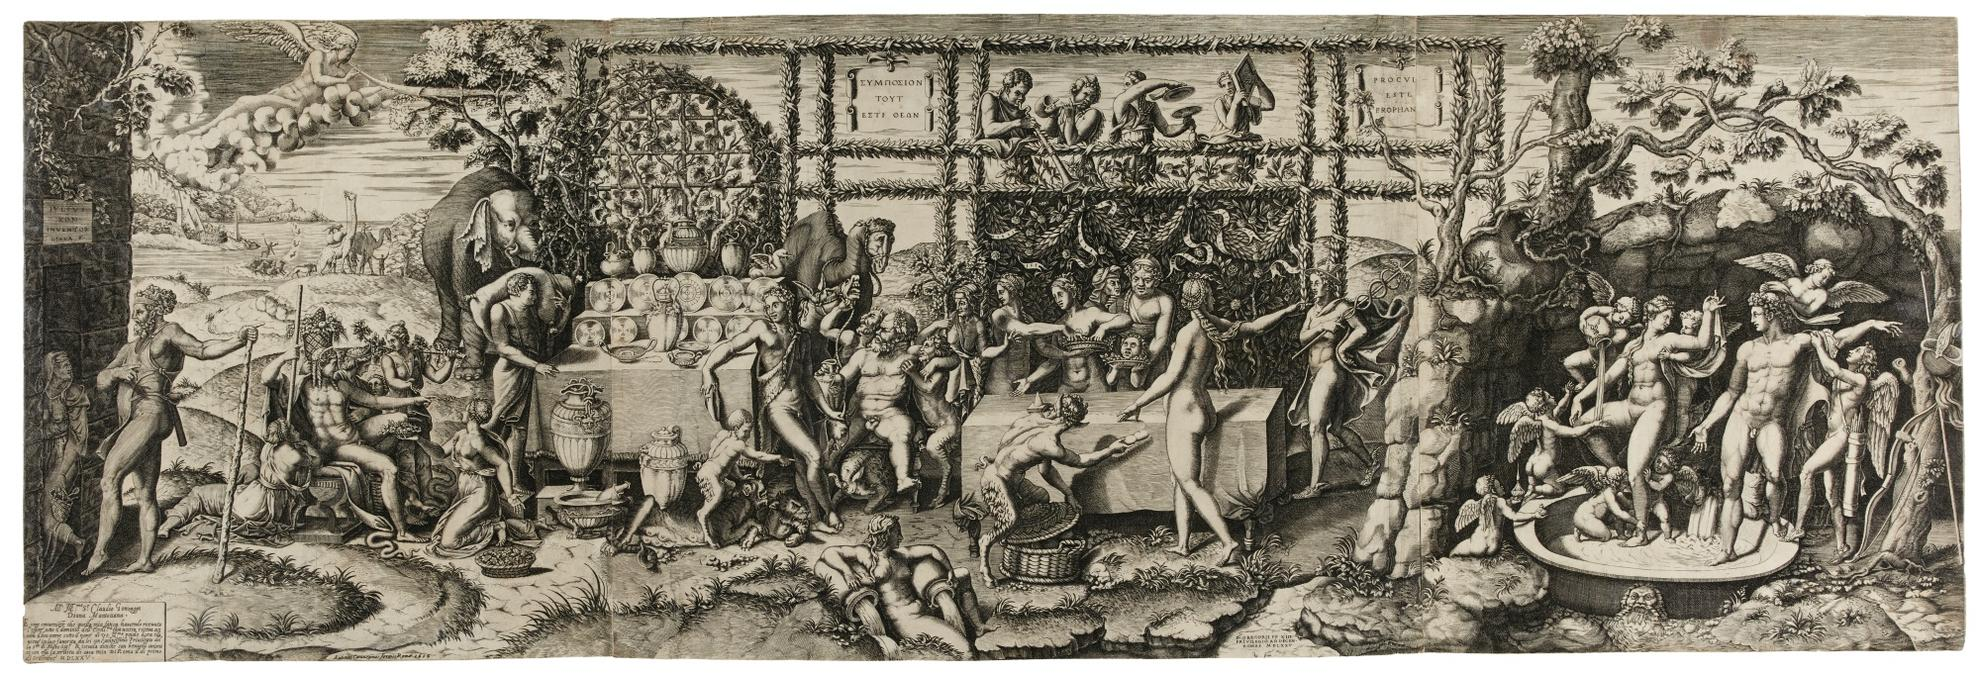 Diana Ghisi-Preparations For The Banquet For Cupid And Psyche, After Giulio Romano 1499 - 1546 (Bartsch 40)-1575